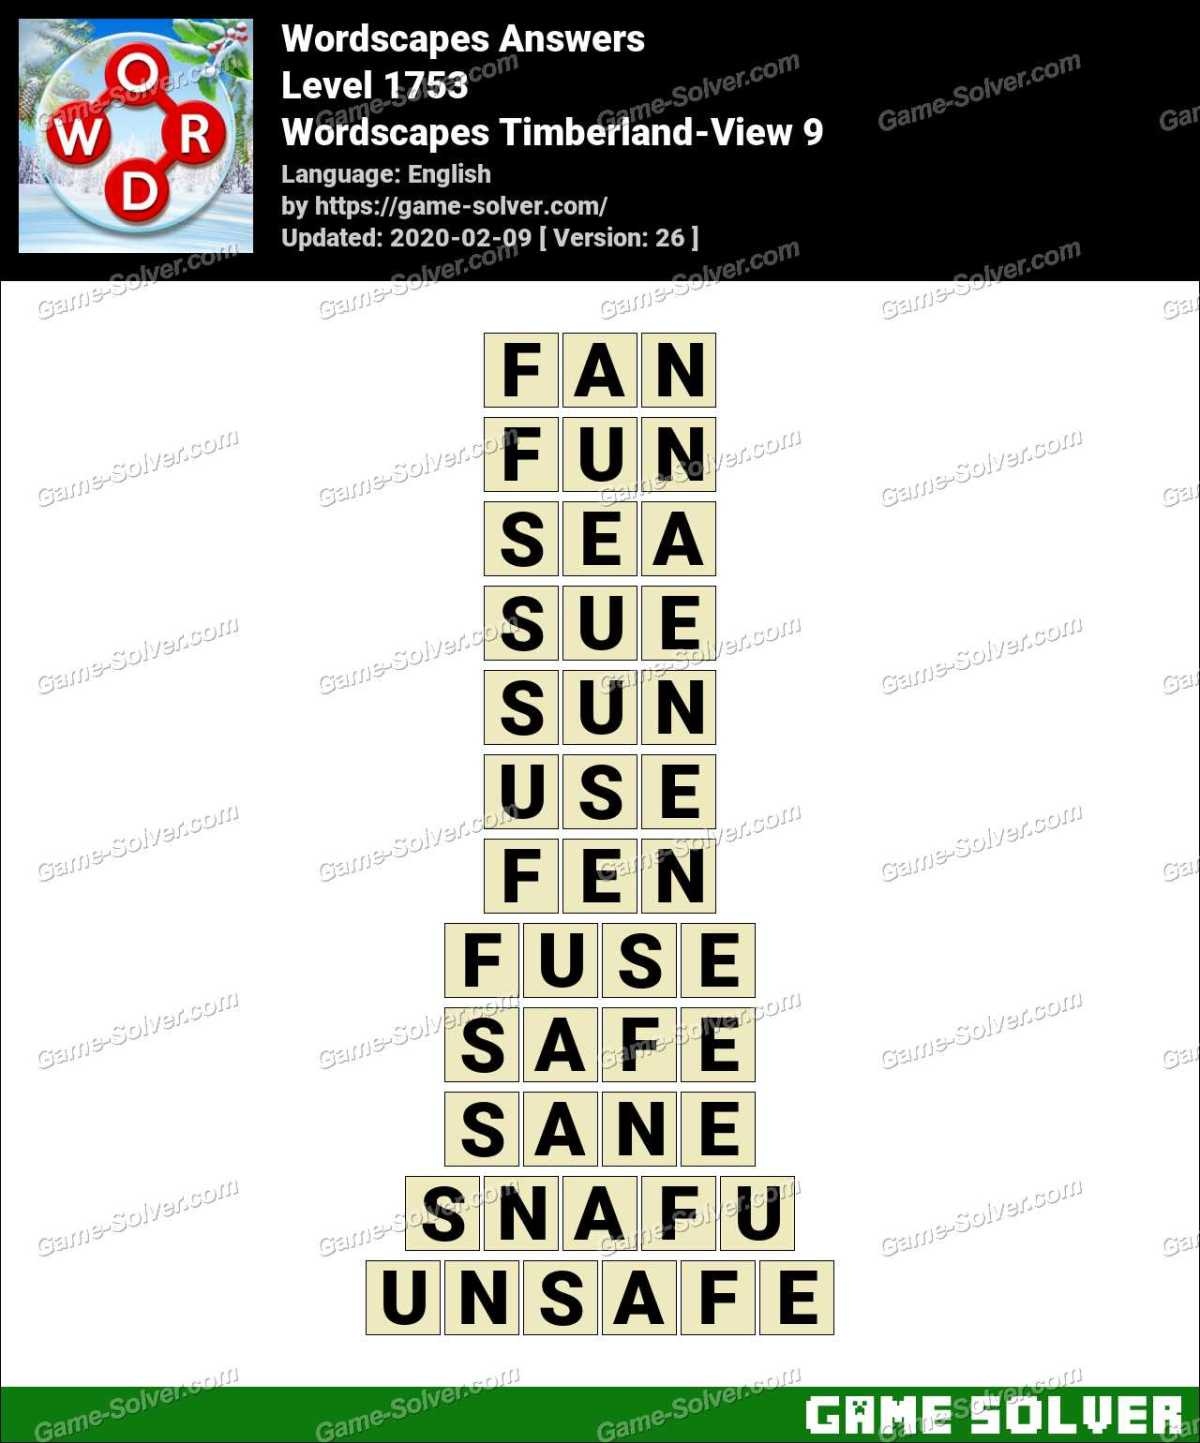 Wordscapes Timberland-View 9 Answers